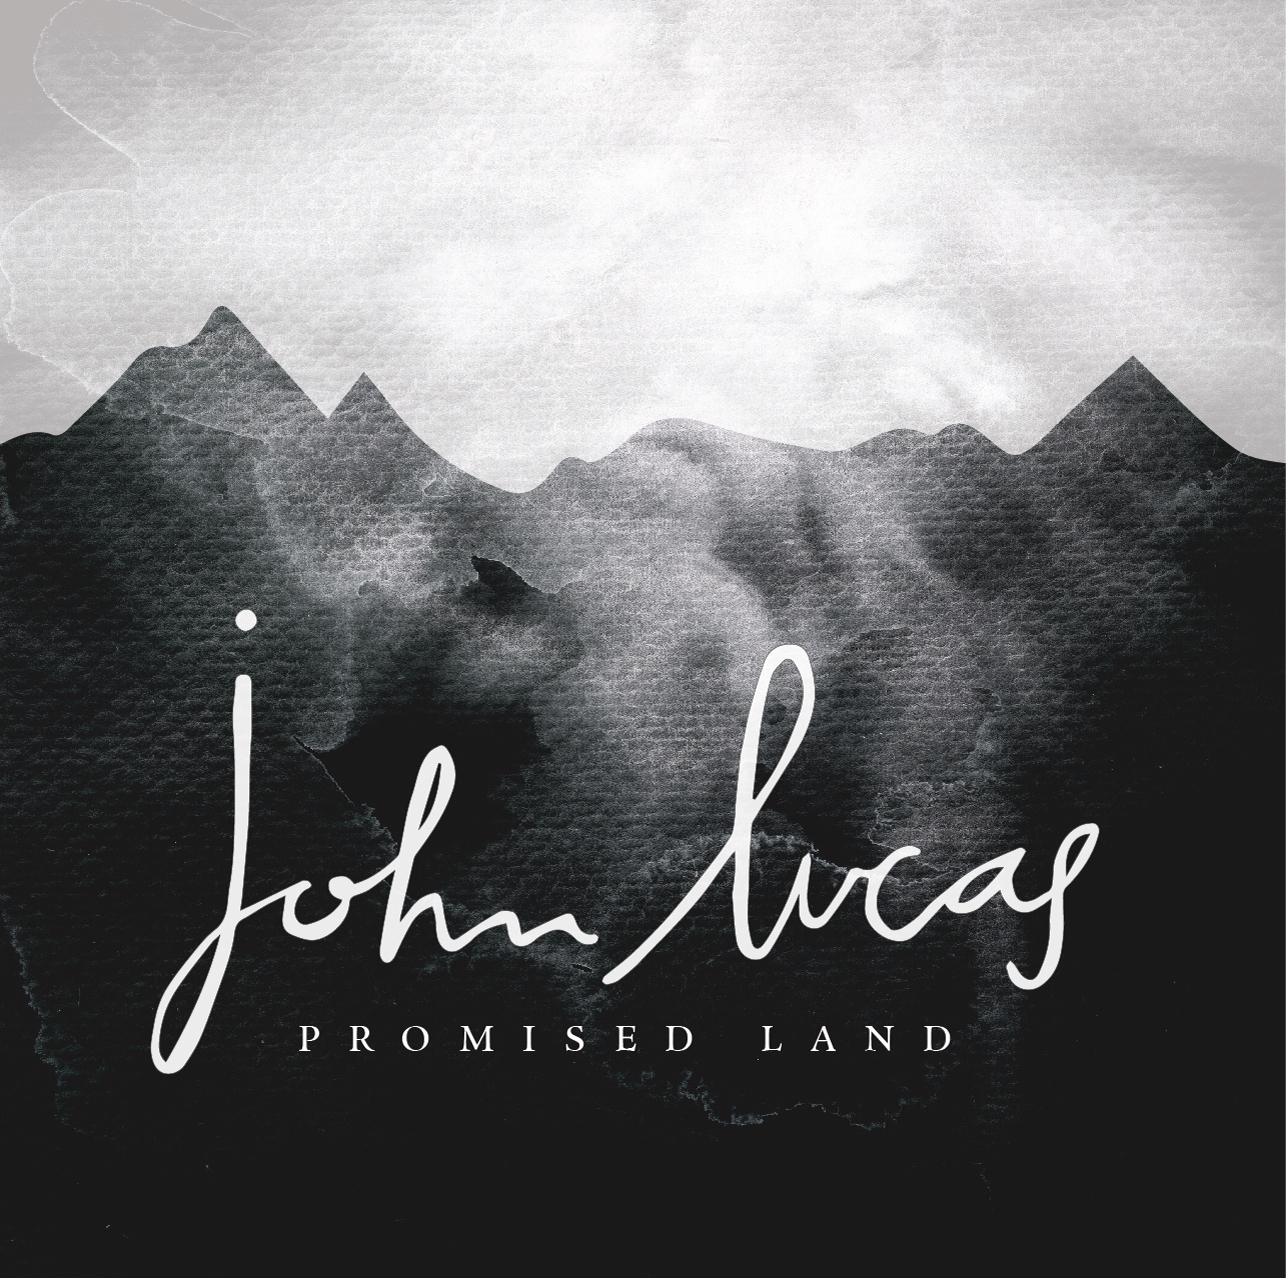 Promised land cover.JPG